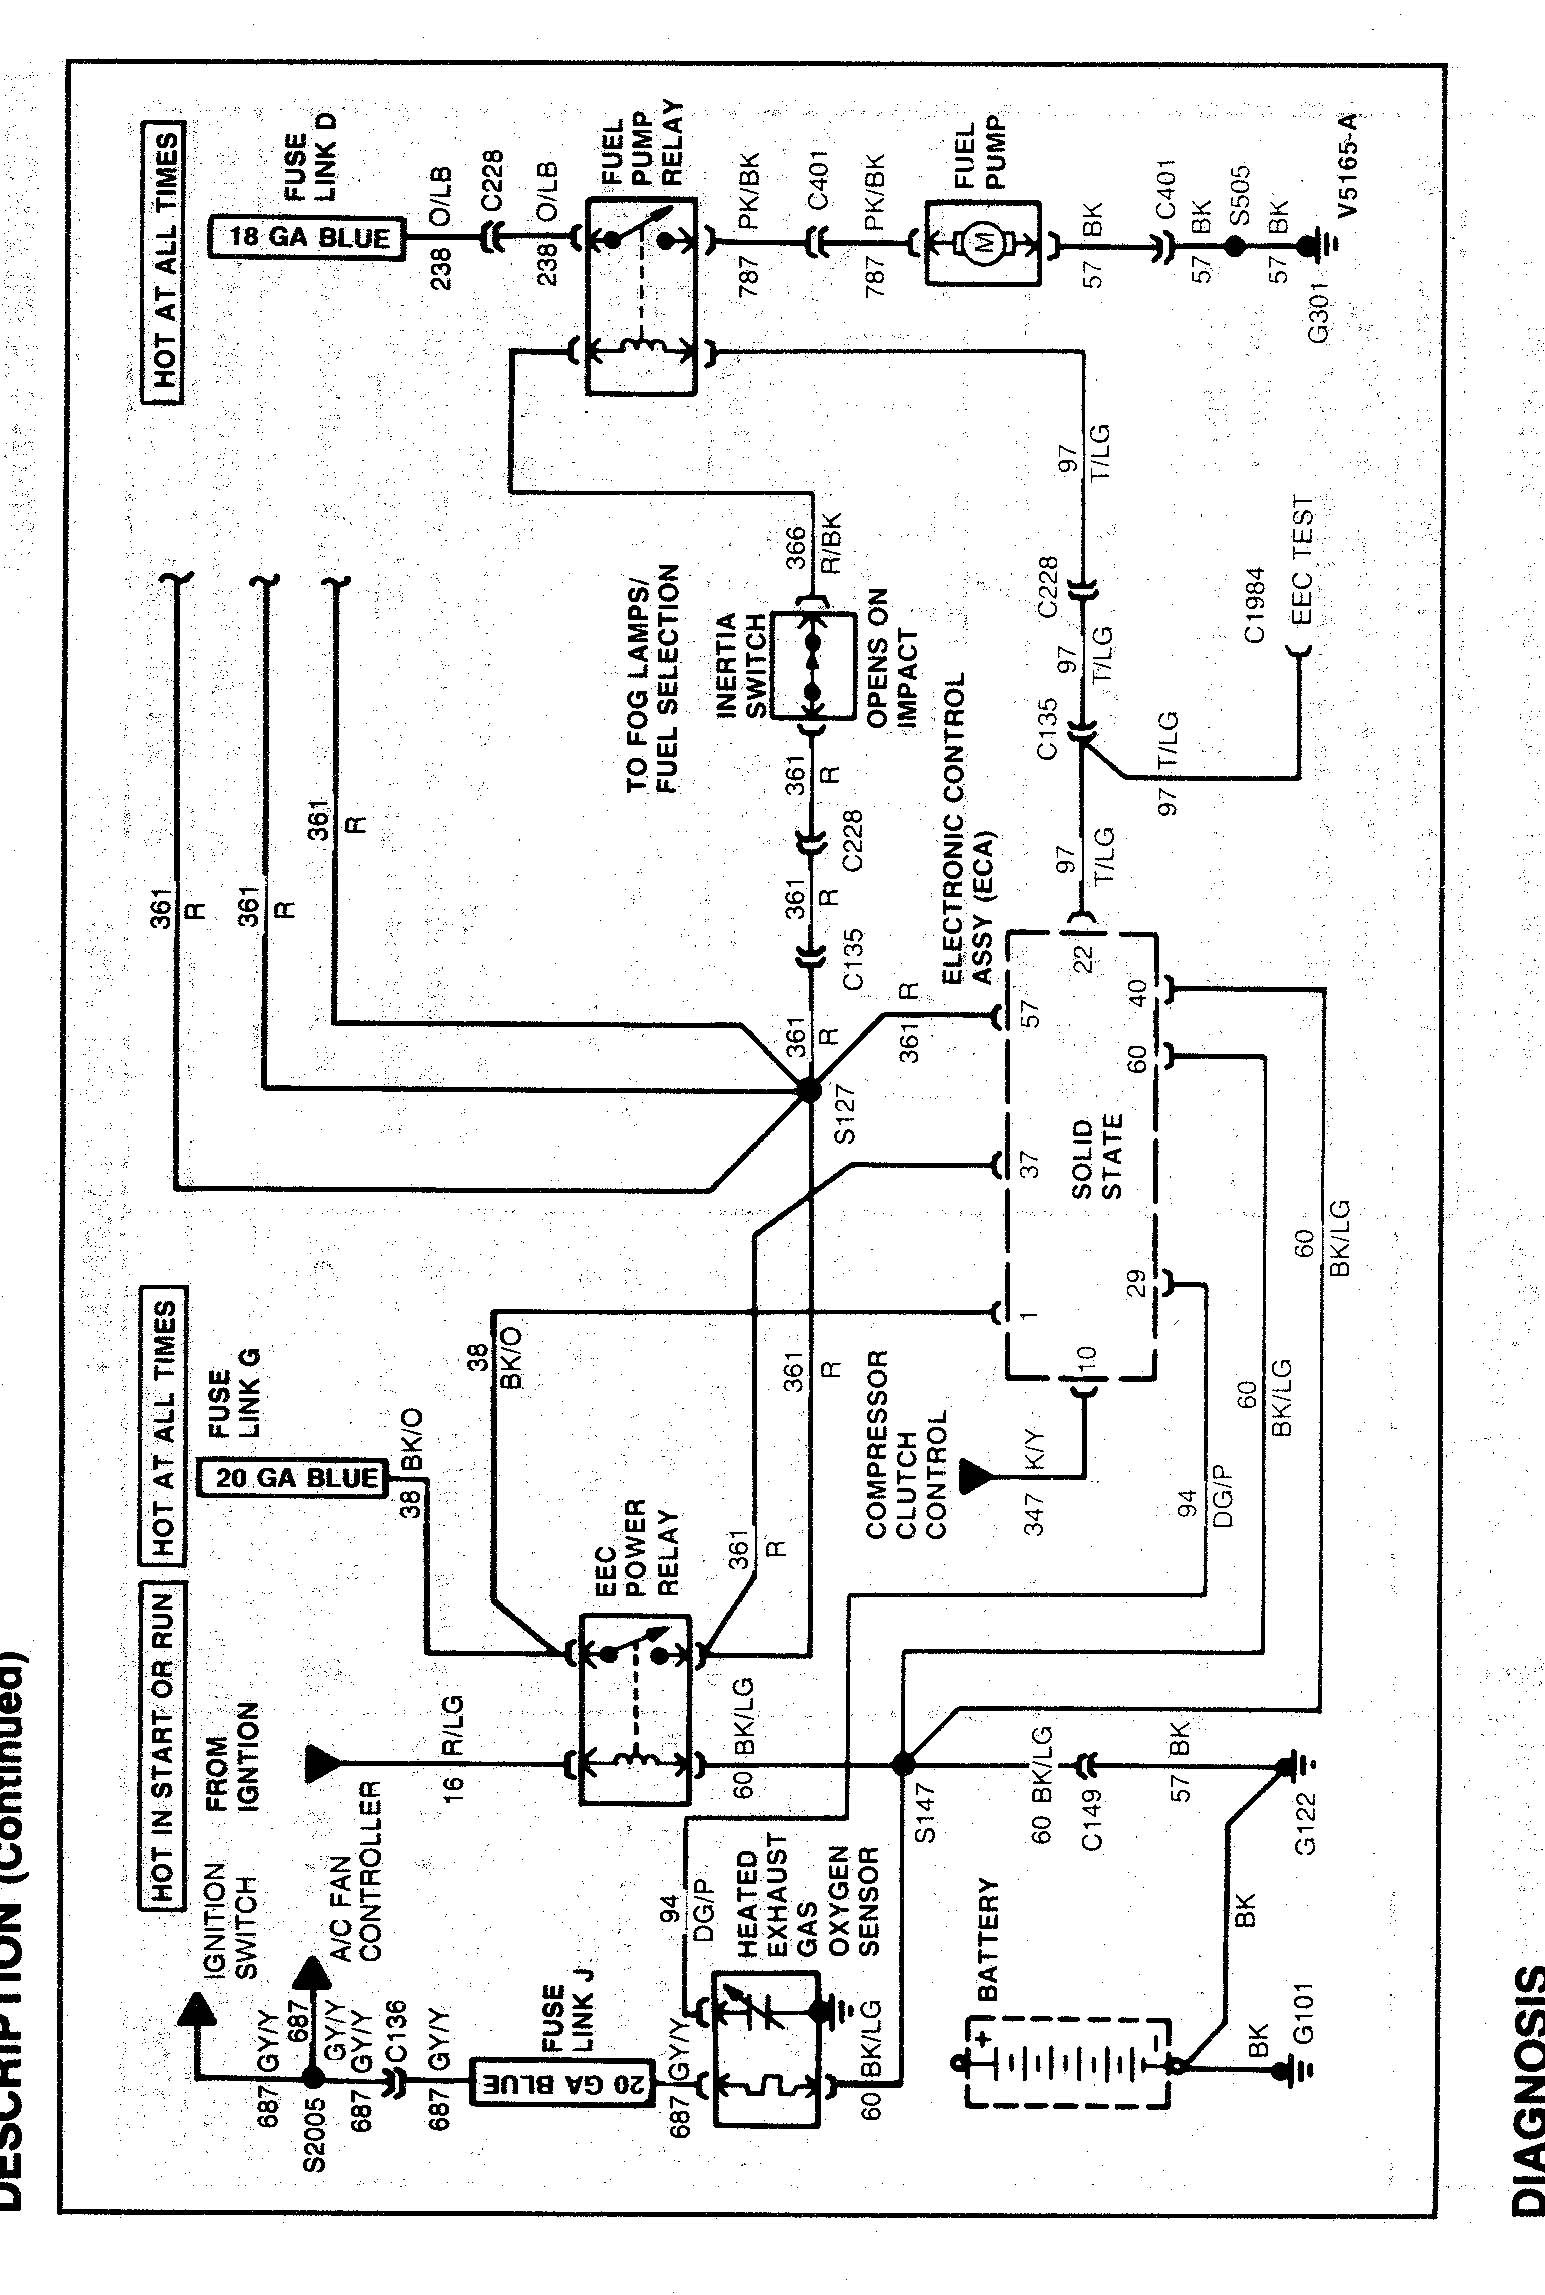 Explorer Fuel Pump Wiring Diagram On 98 F150 F150 Wiring Diagram 1998 Schematics Diagrams U2022 Rh Seniorlivinguniversity Co